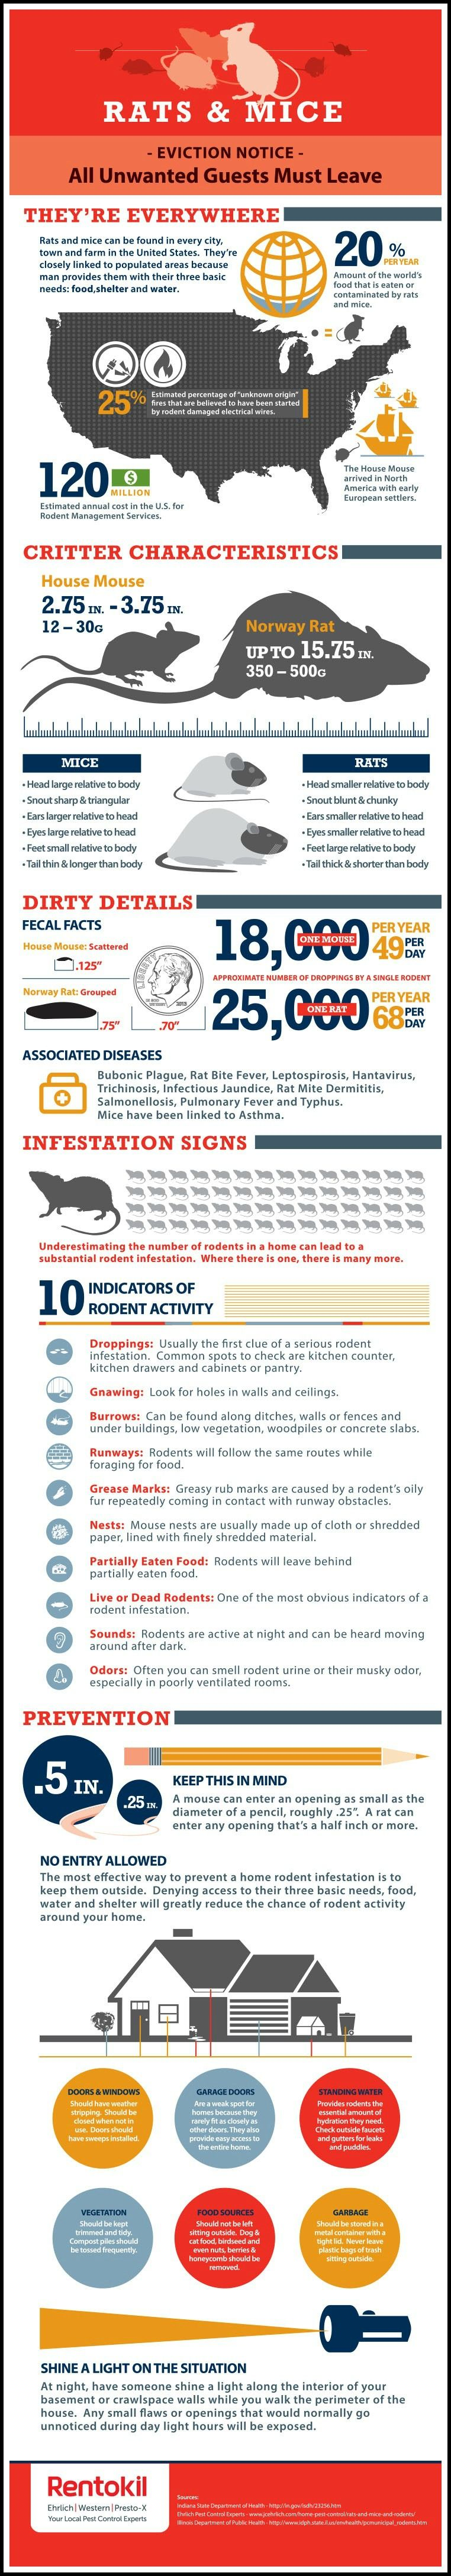 Rodent infographic how to keep rats and mice out of your home rodent infographic how to keep rats and mice out of your home fandeluxe Image collections